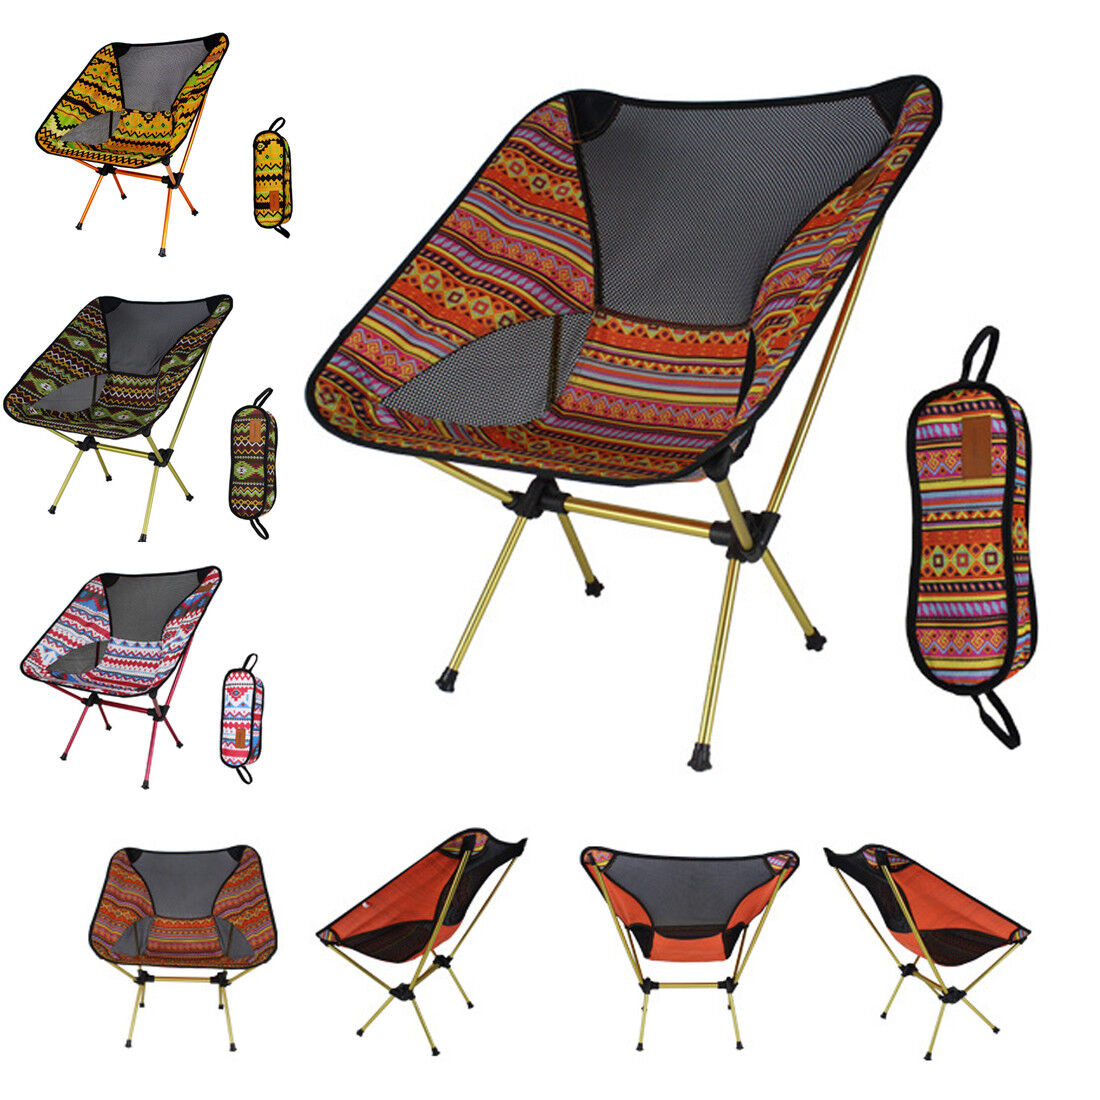 Folding Indian Camping Chair Outdoor Hiking Ultra-light Portable Foldable Chair